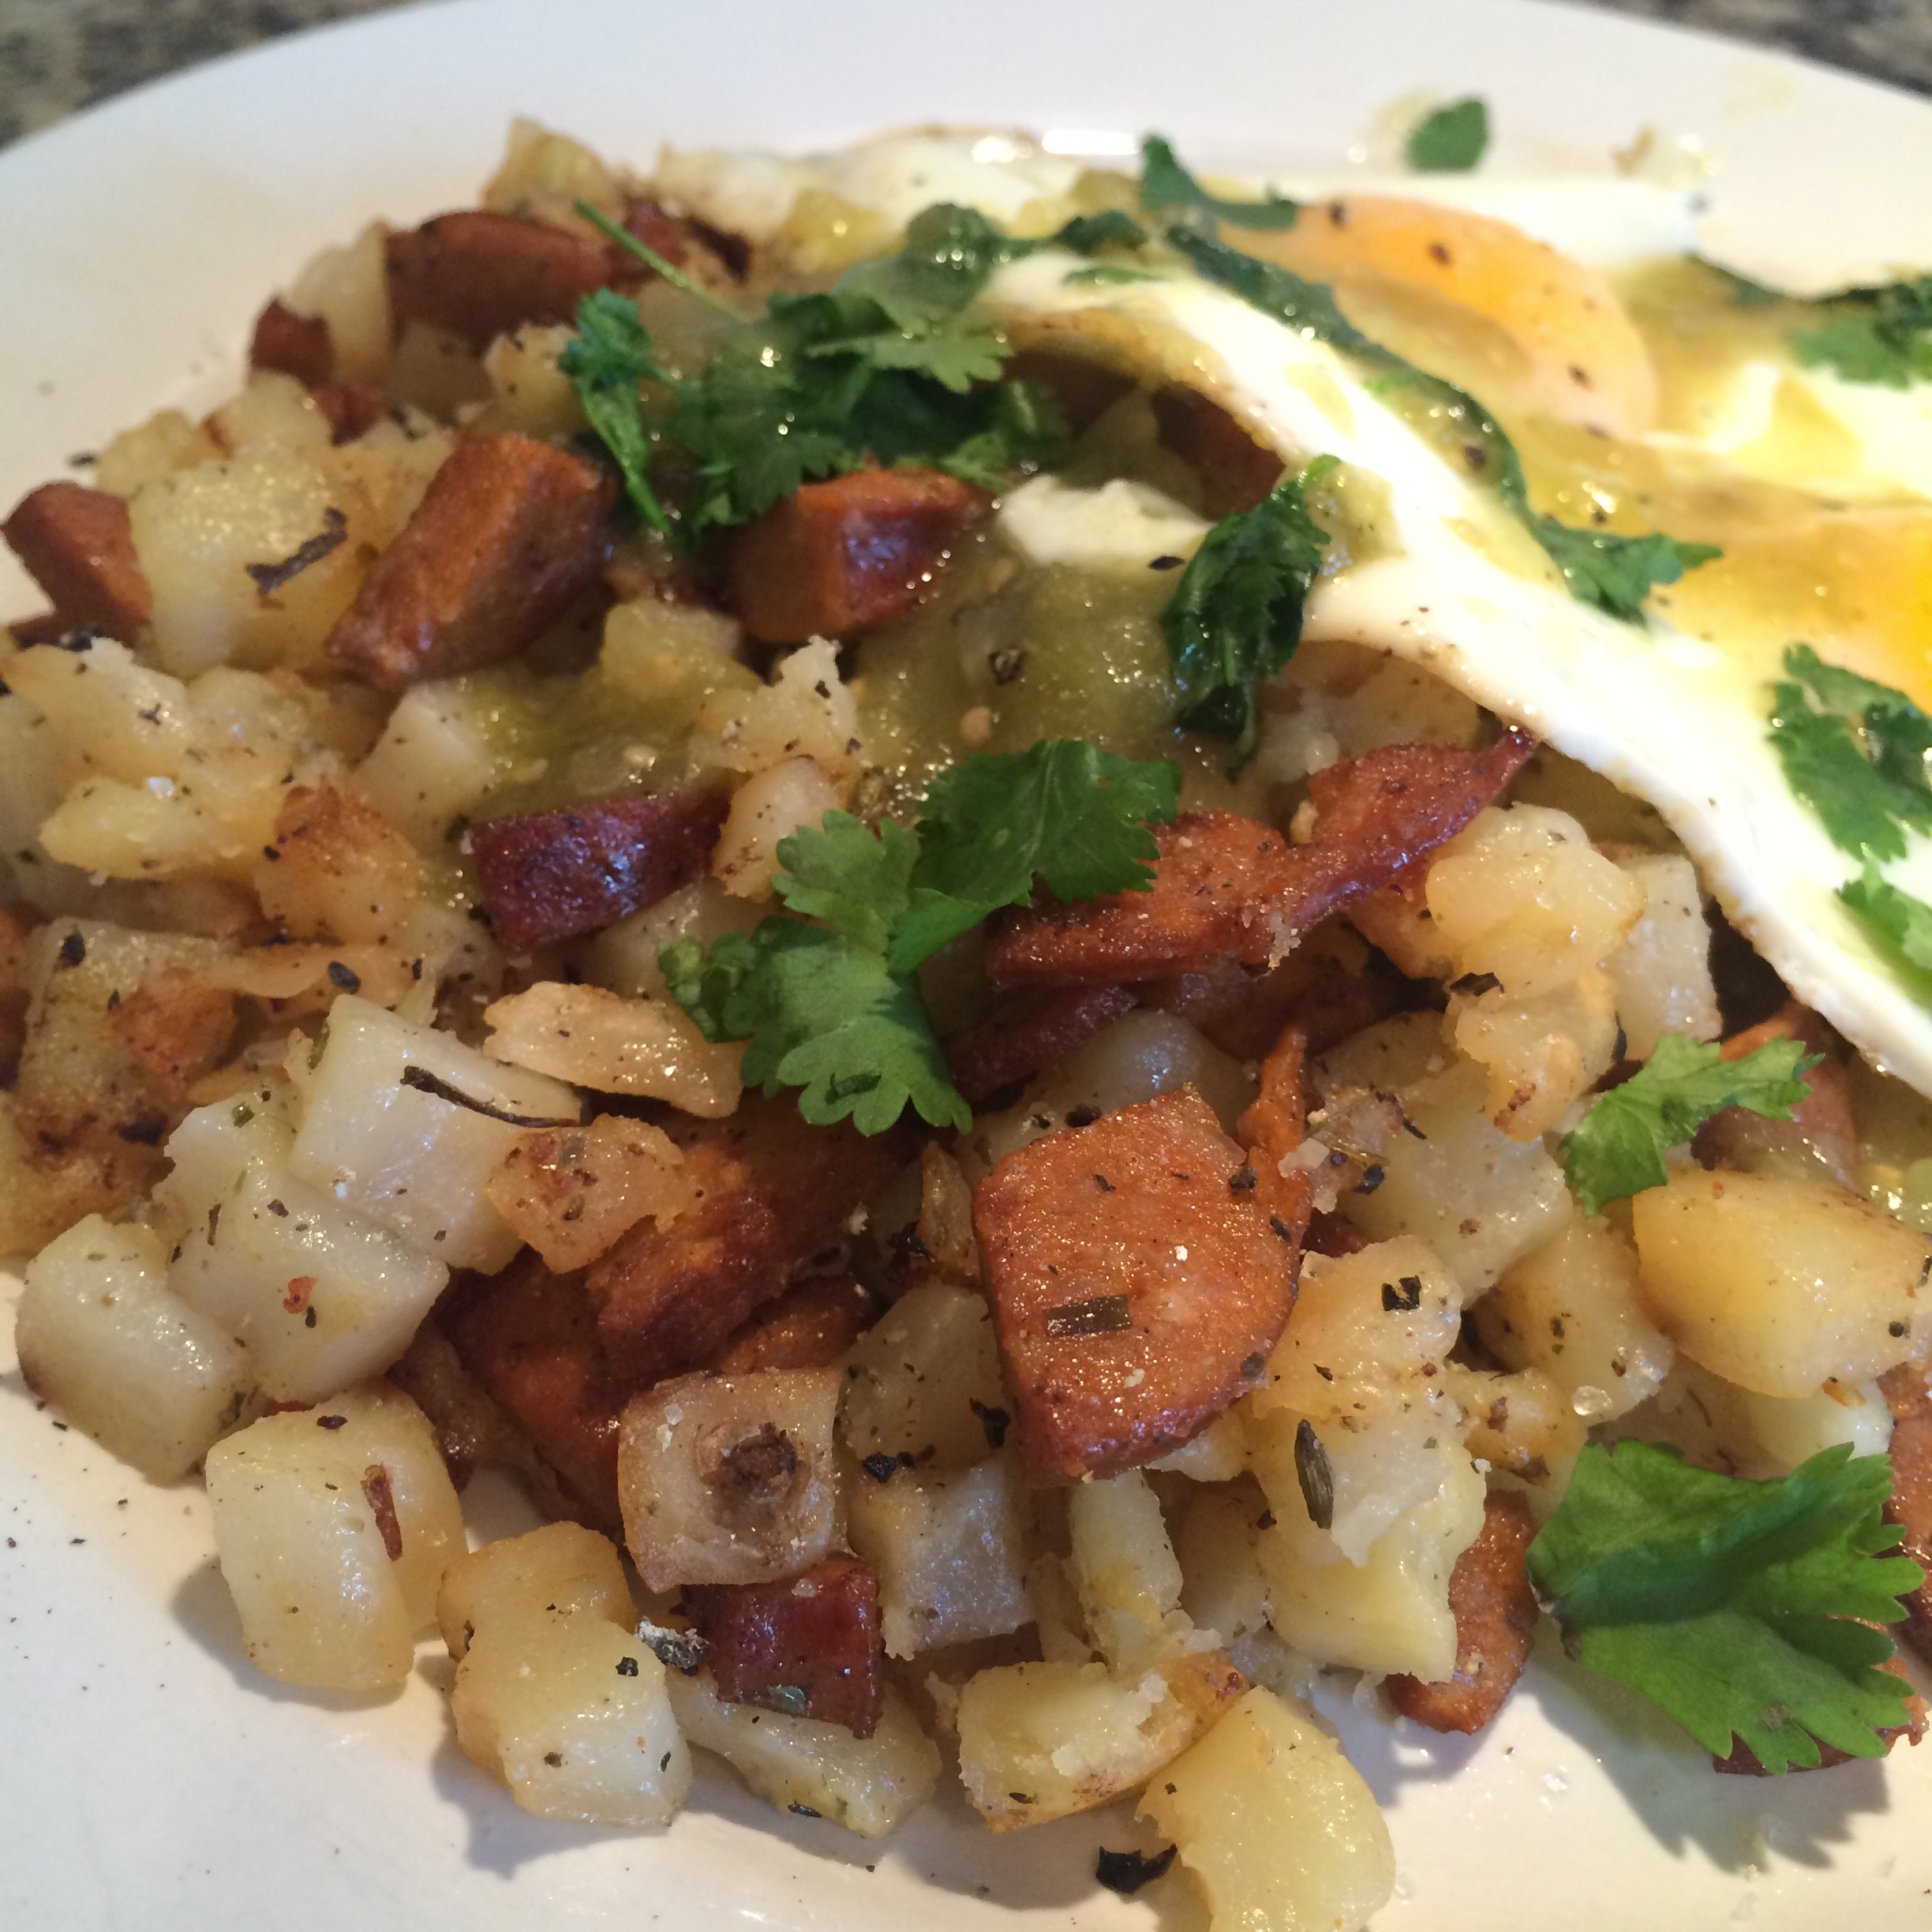 Andouille Sausage and Potatoes